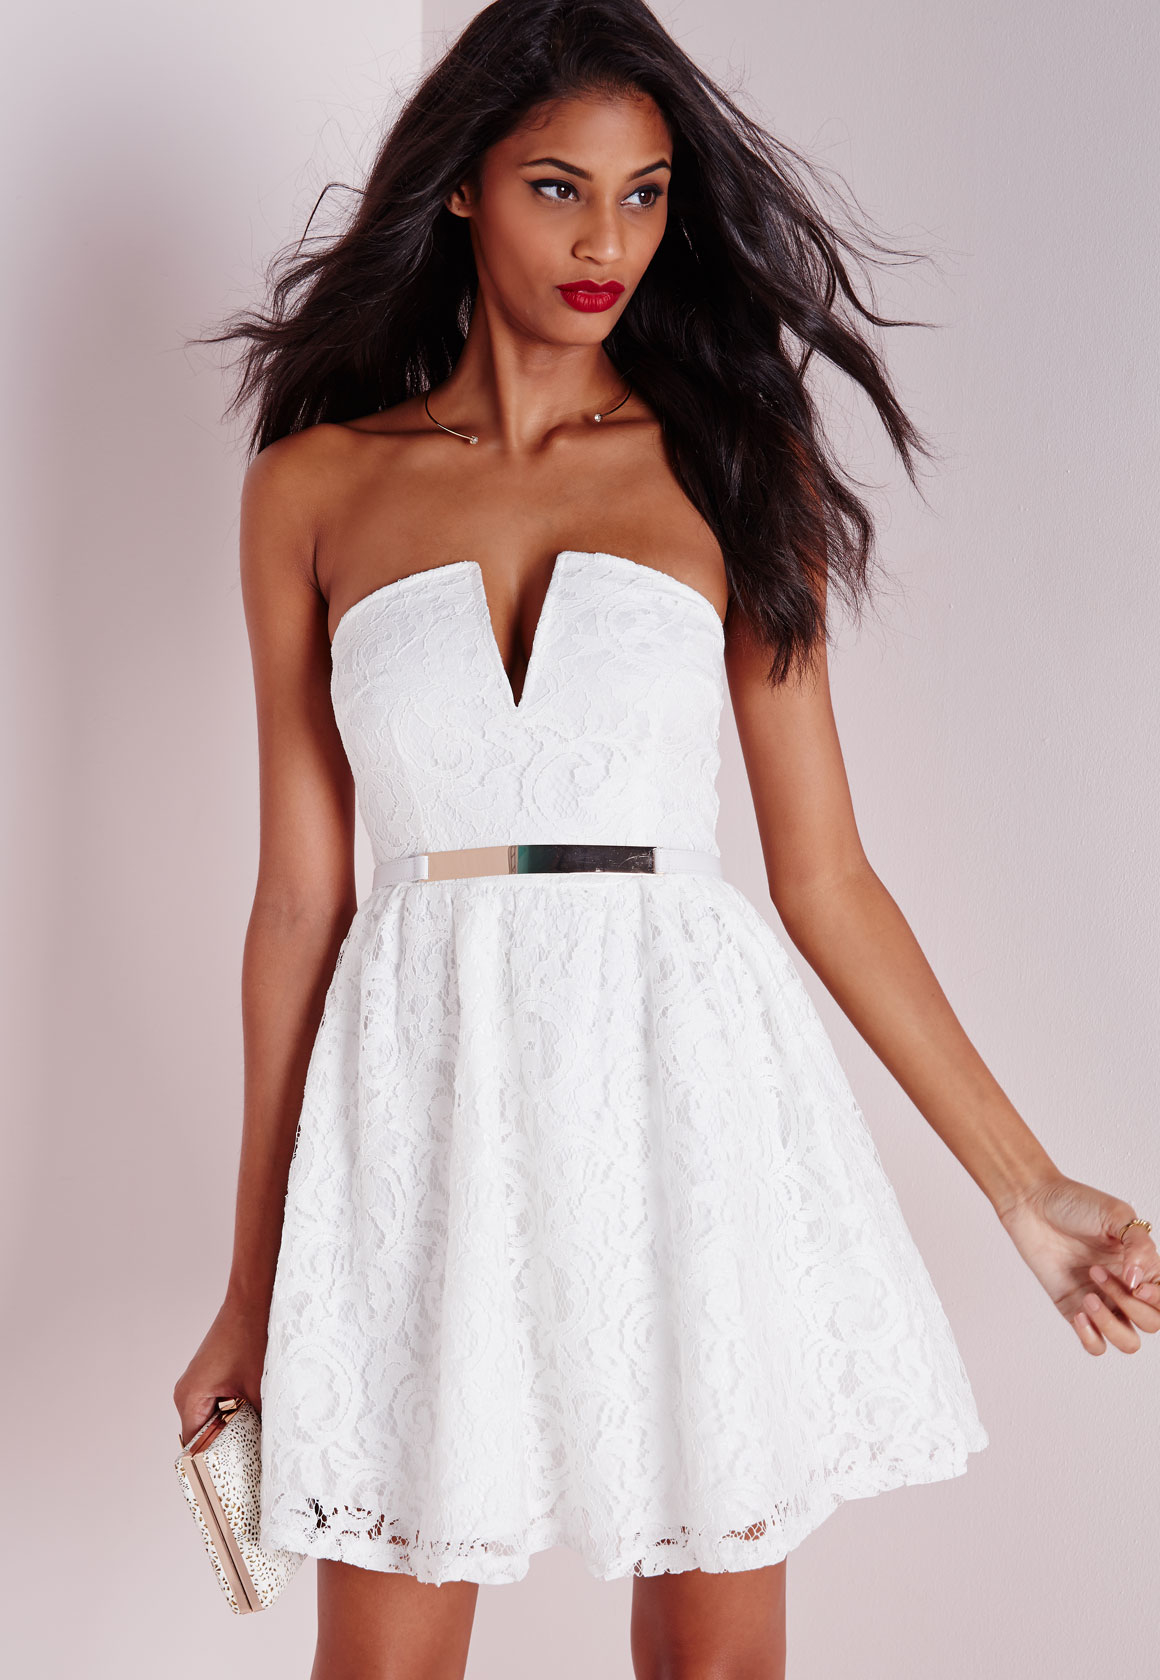 Choose from Bridesmaid & Prom Dresses for Special Occasions. This site uses cookies to provide and improve your shopping experience. If you want to benefit from this improved service, please opt-in.. For more information, please see our Cookies Page. Black and White Ruffle Mini Dress.